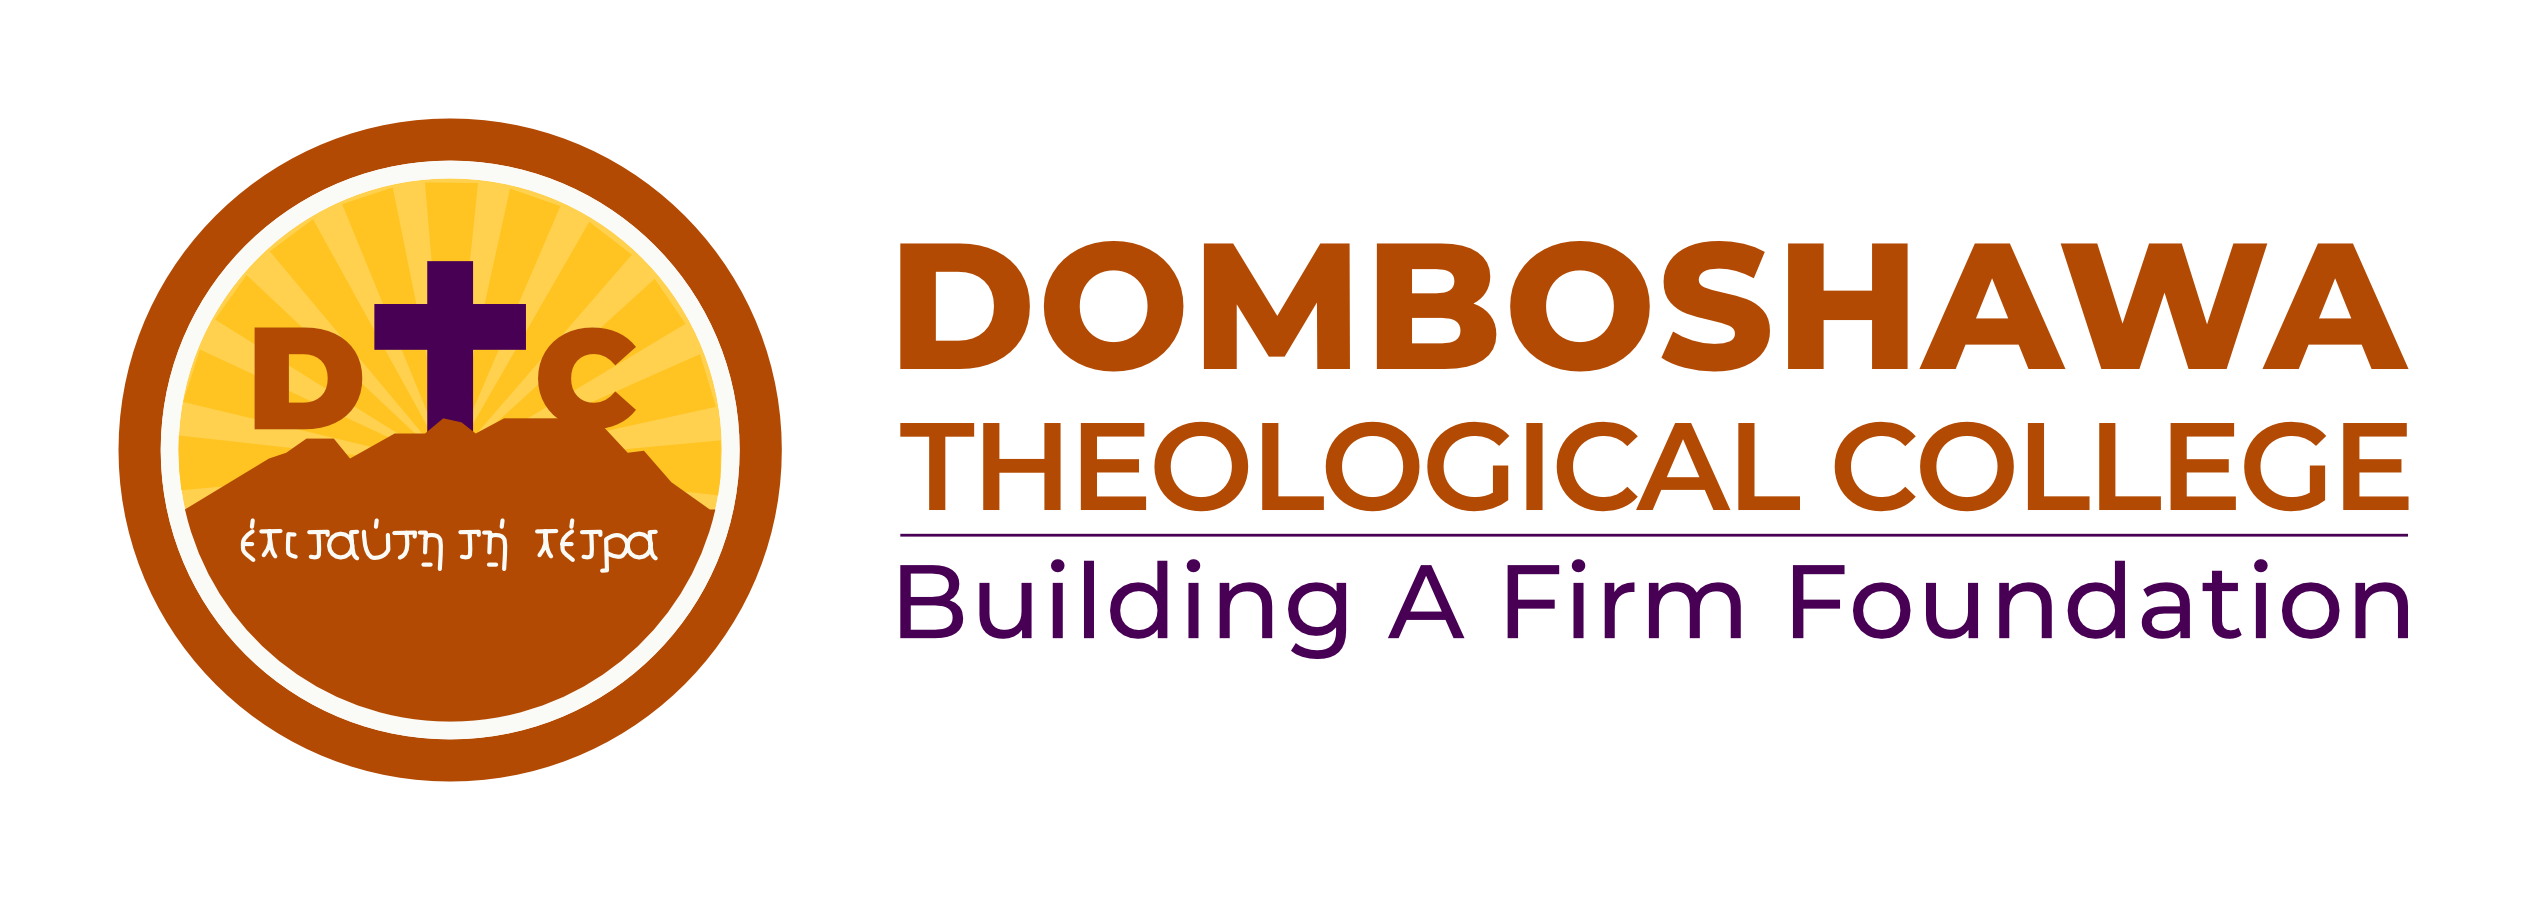 Domboshawa Theological College Logo